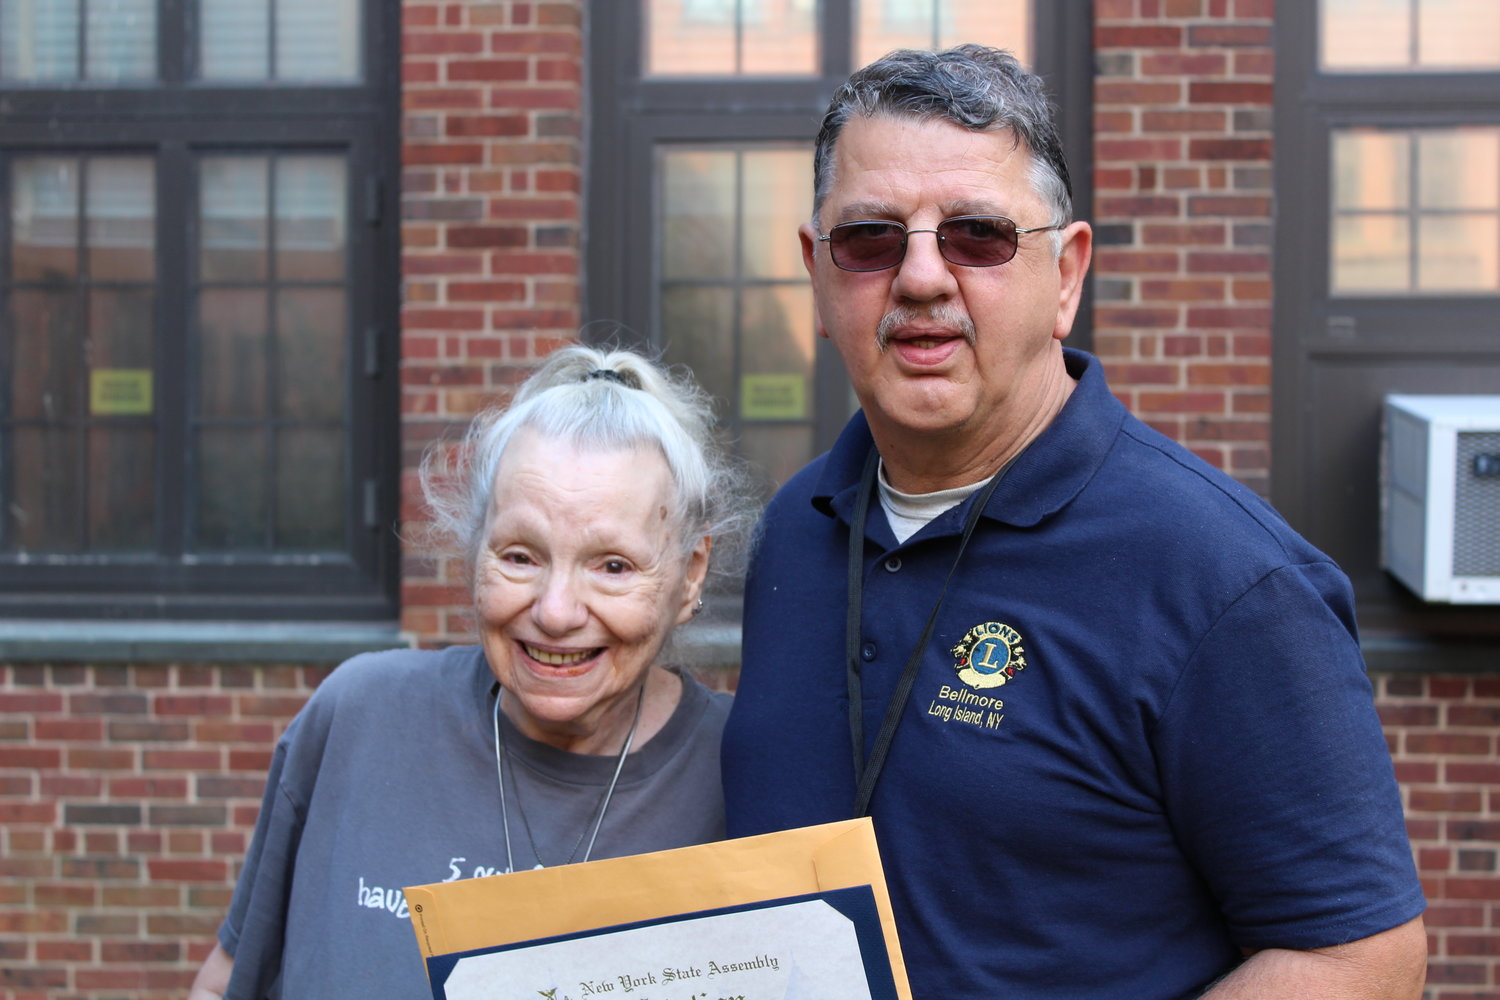 Weinman's wife, Myrna, left, and John Scalesi, a friend of the family, attended the ceremony last week.